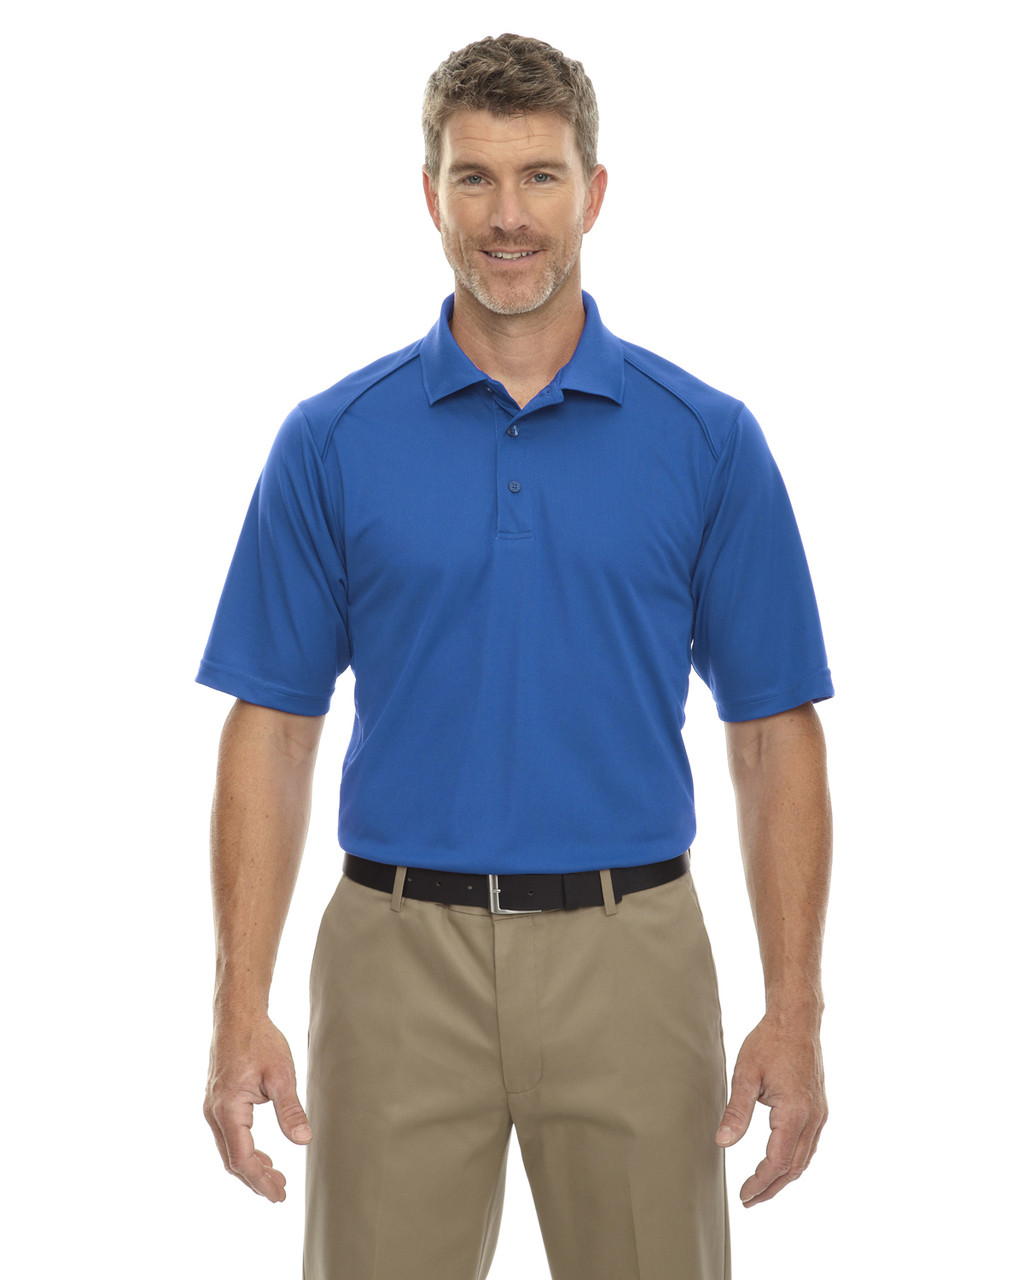 True Royal - 85108T Ash City - Extreme Eperformance Men's Tall Protection Short-Sleeve Polo